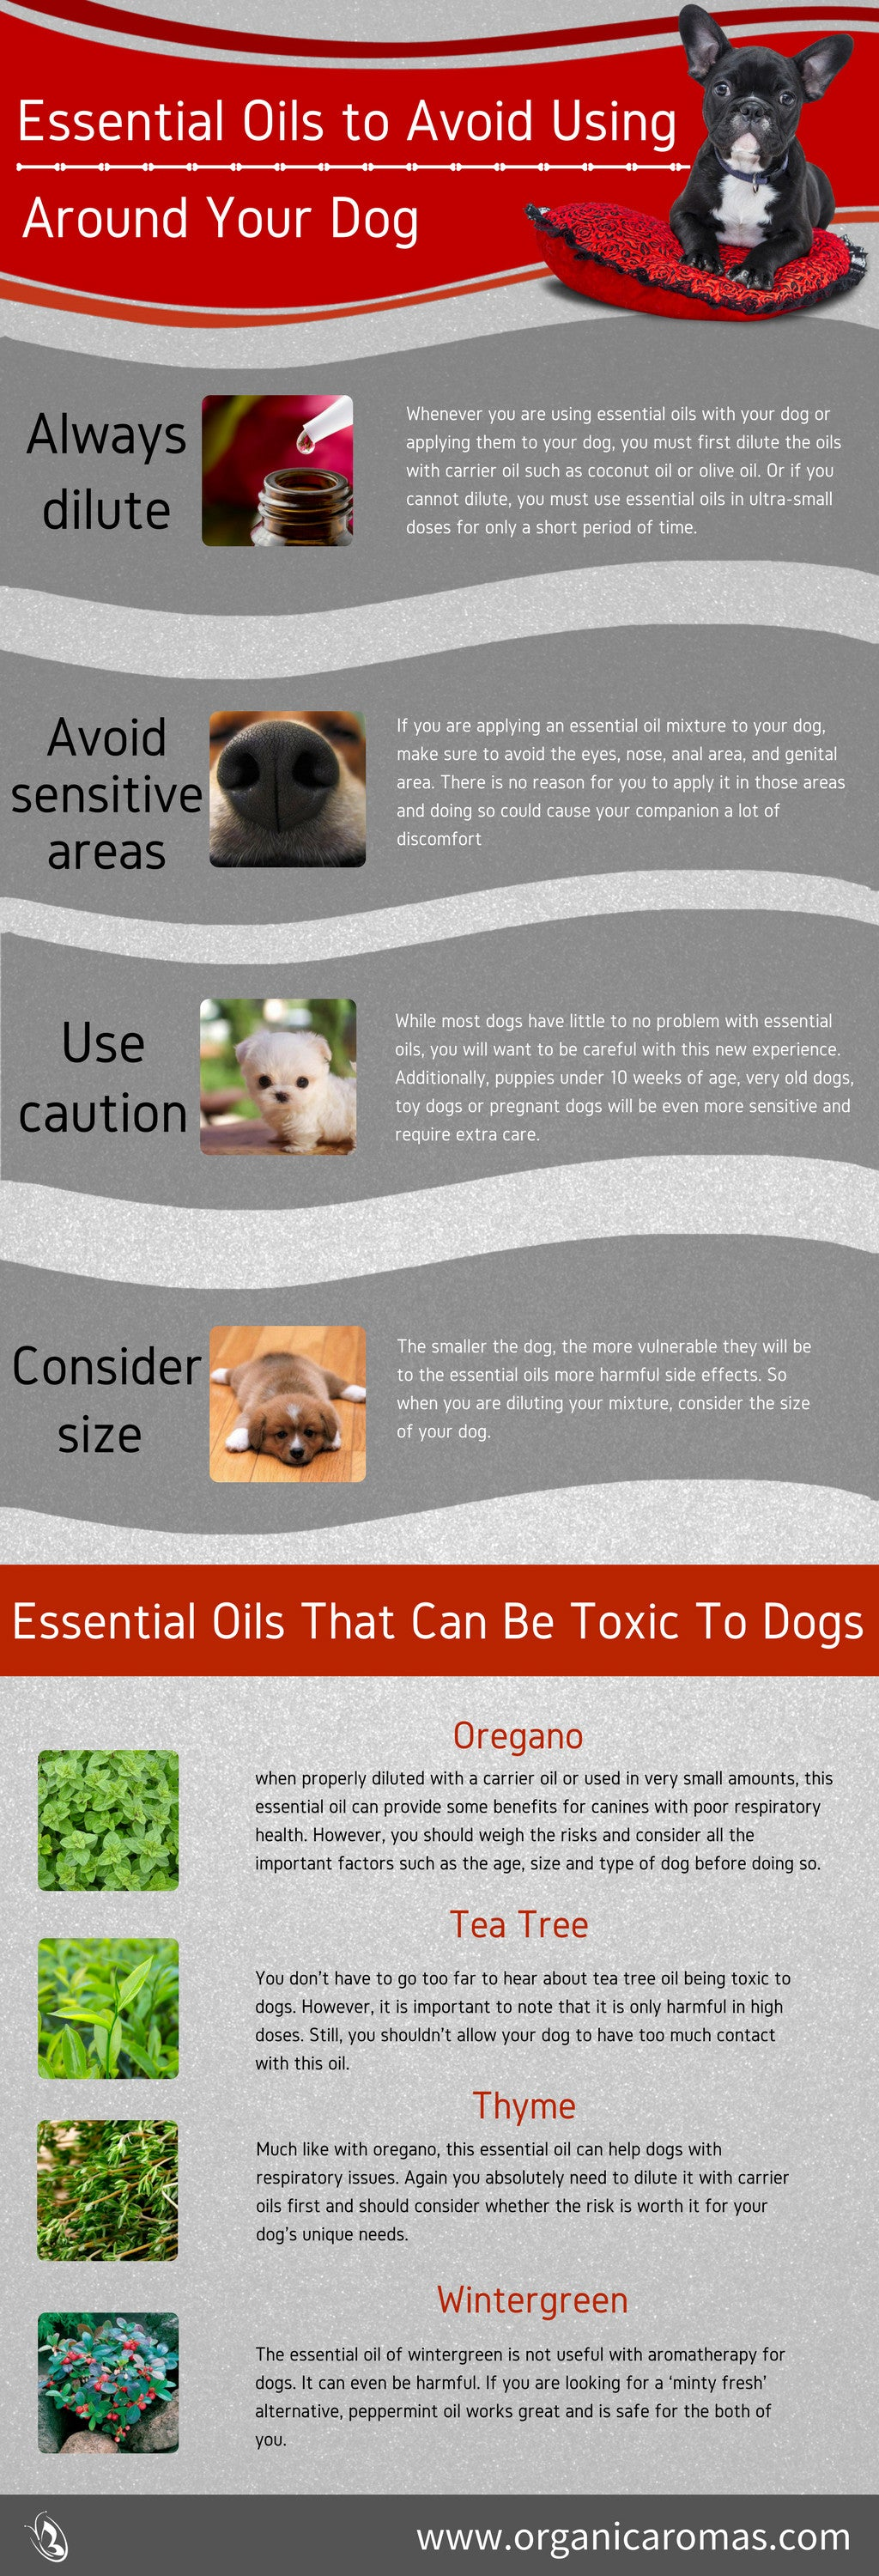 Essential Oils to Avoid und Your Dog Info-graphic